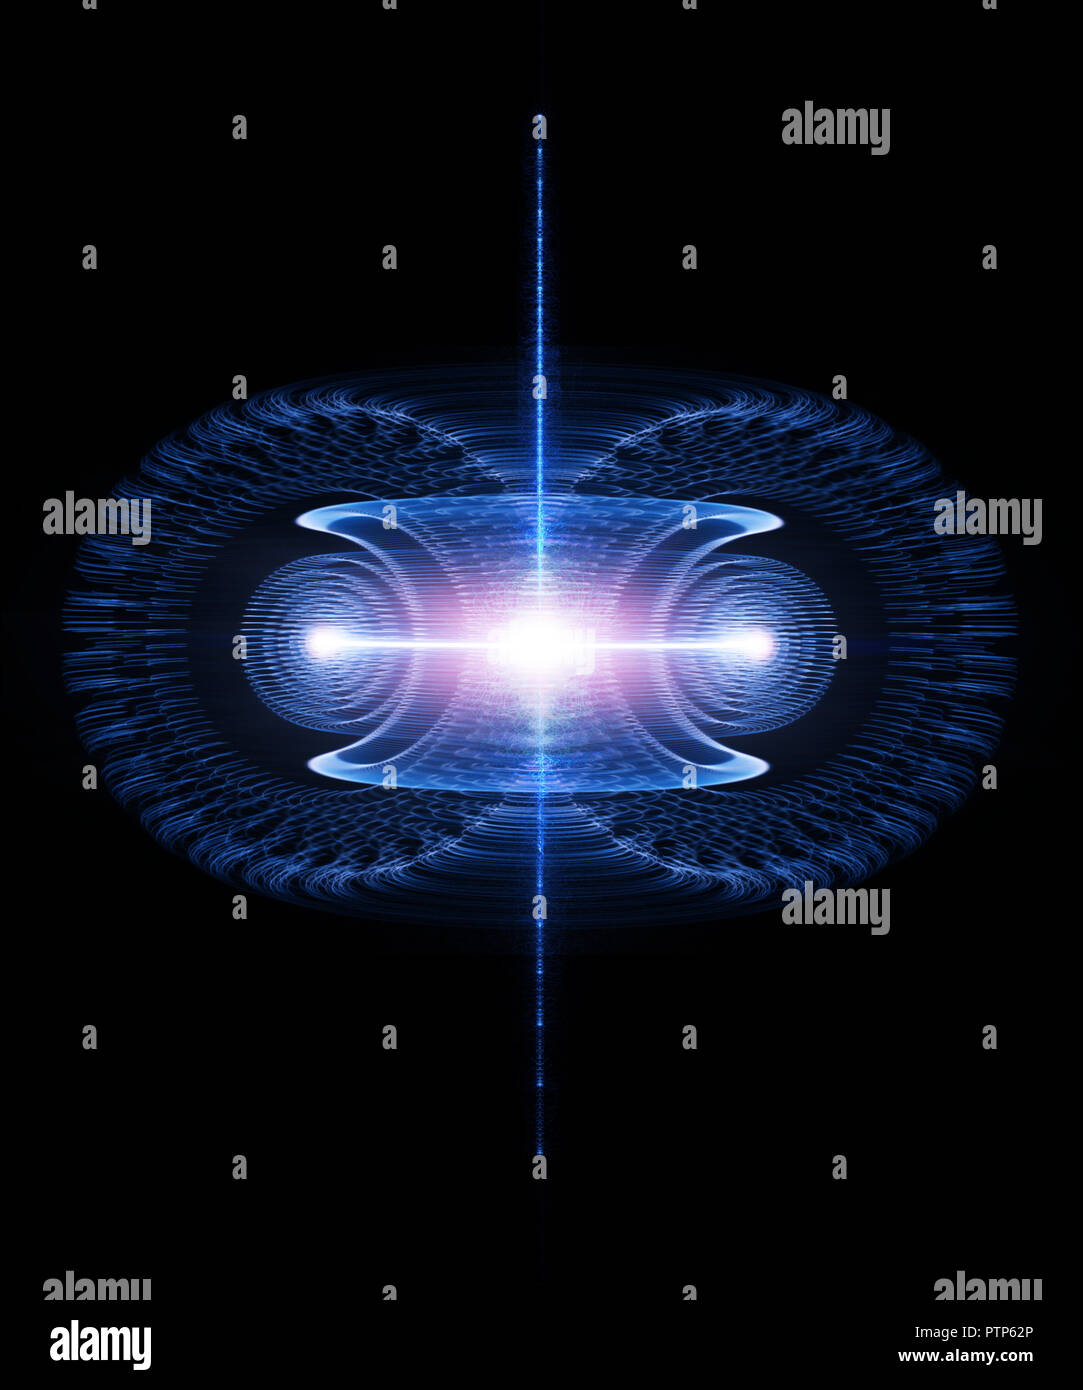 Nuclear Fusion Stock Photos & Nuclear Fusion Stock Images - Alamy